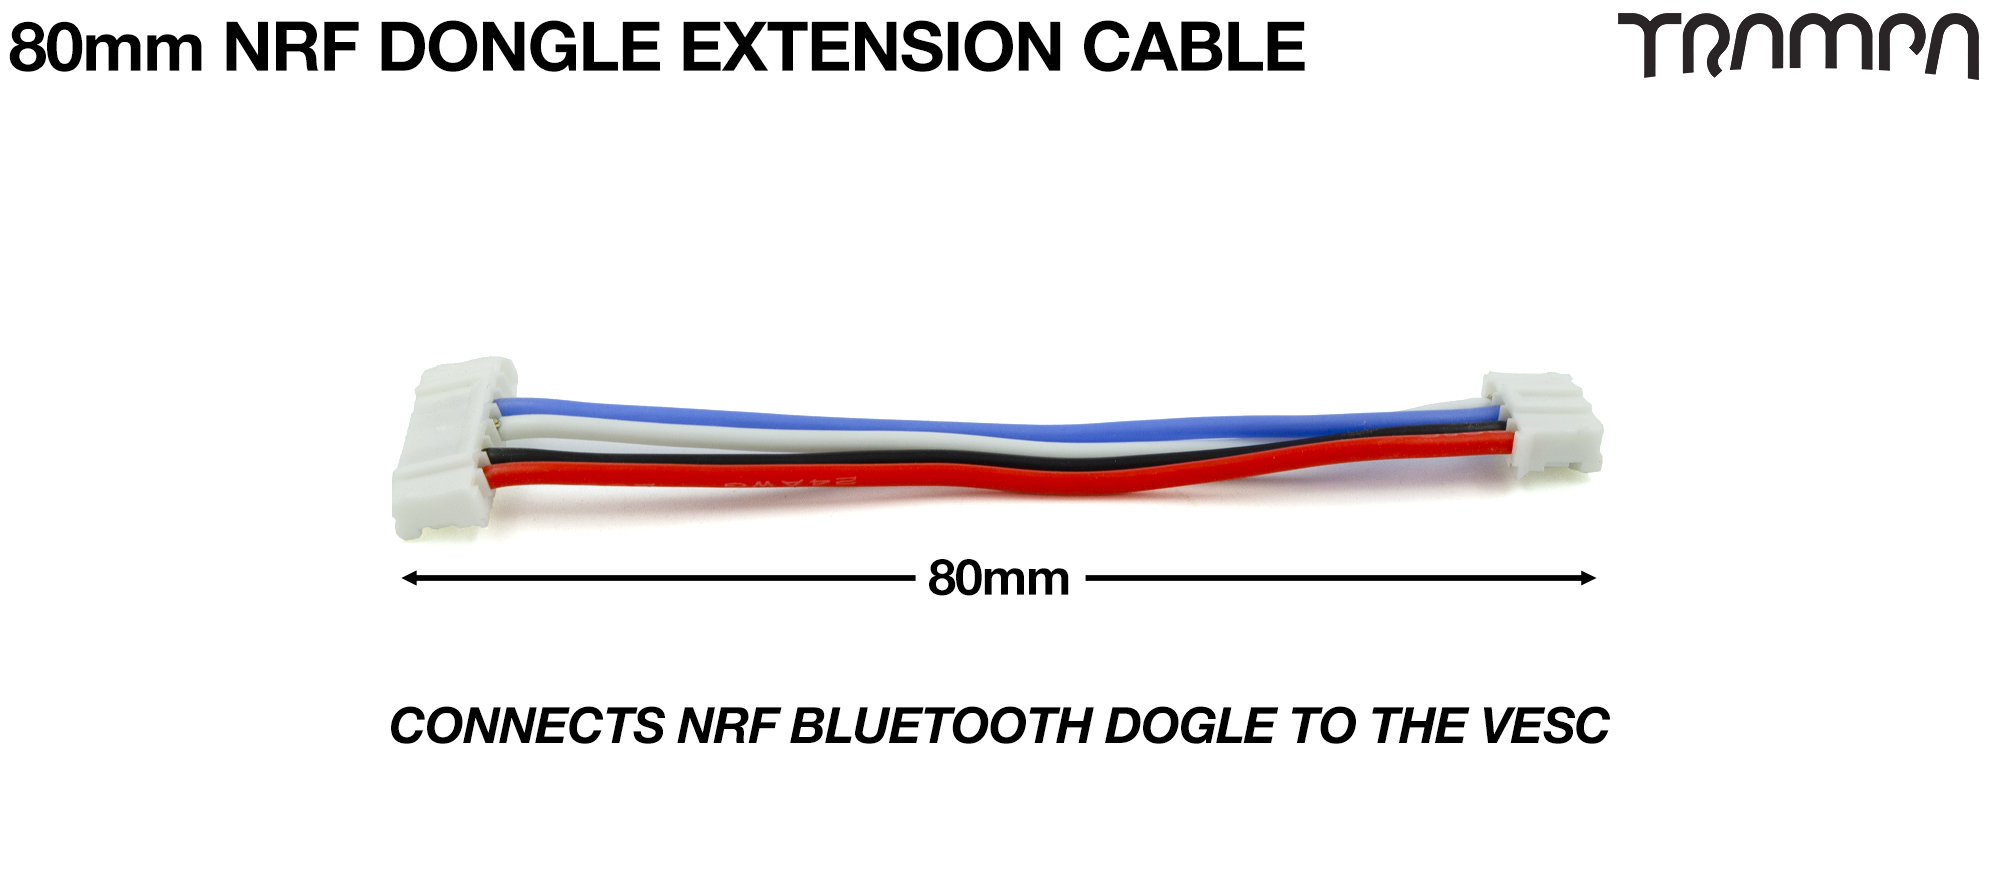 80mm of VESC Connect Dongle Cable per Dongle